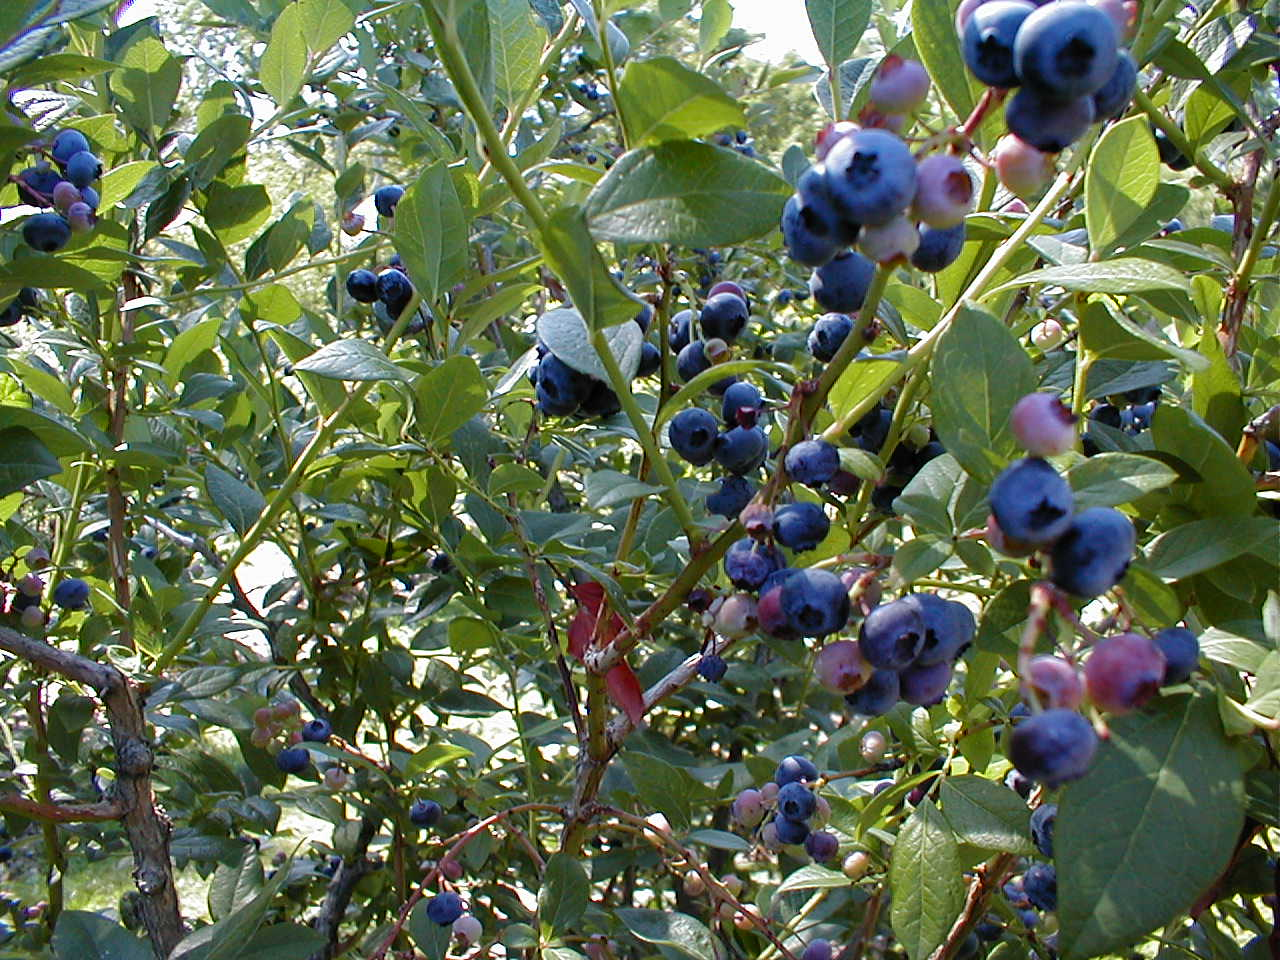 Garden Design with Blueberries Plant Care Guide Blueberries in Containers Auntie with Plant Fungicide from